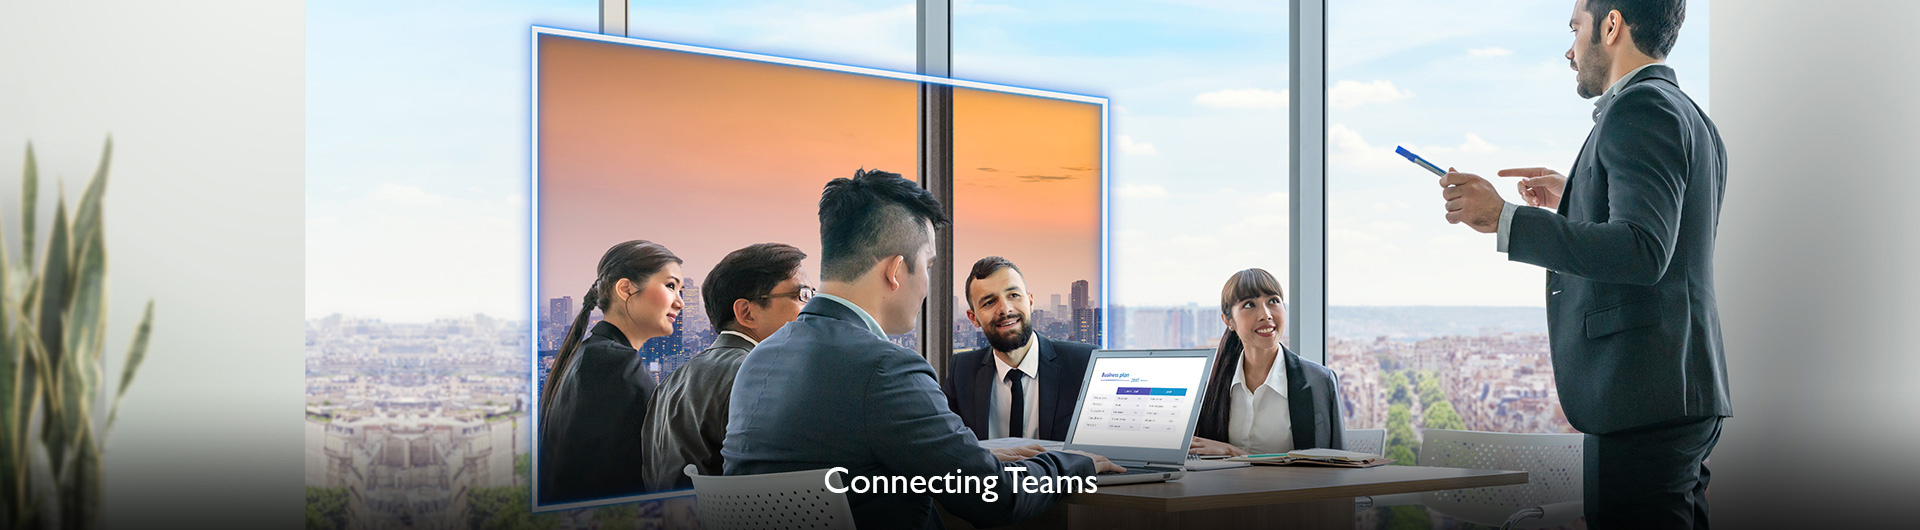 Connecting Teams through Collaboration with BenQ Smart Meeting Rooom Solutions